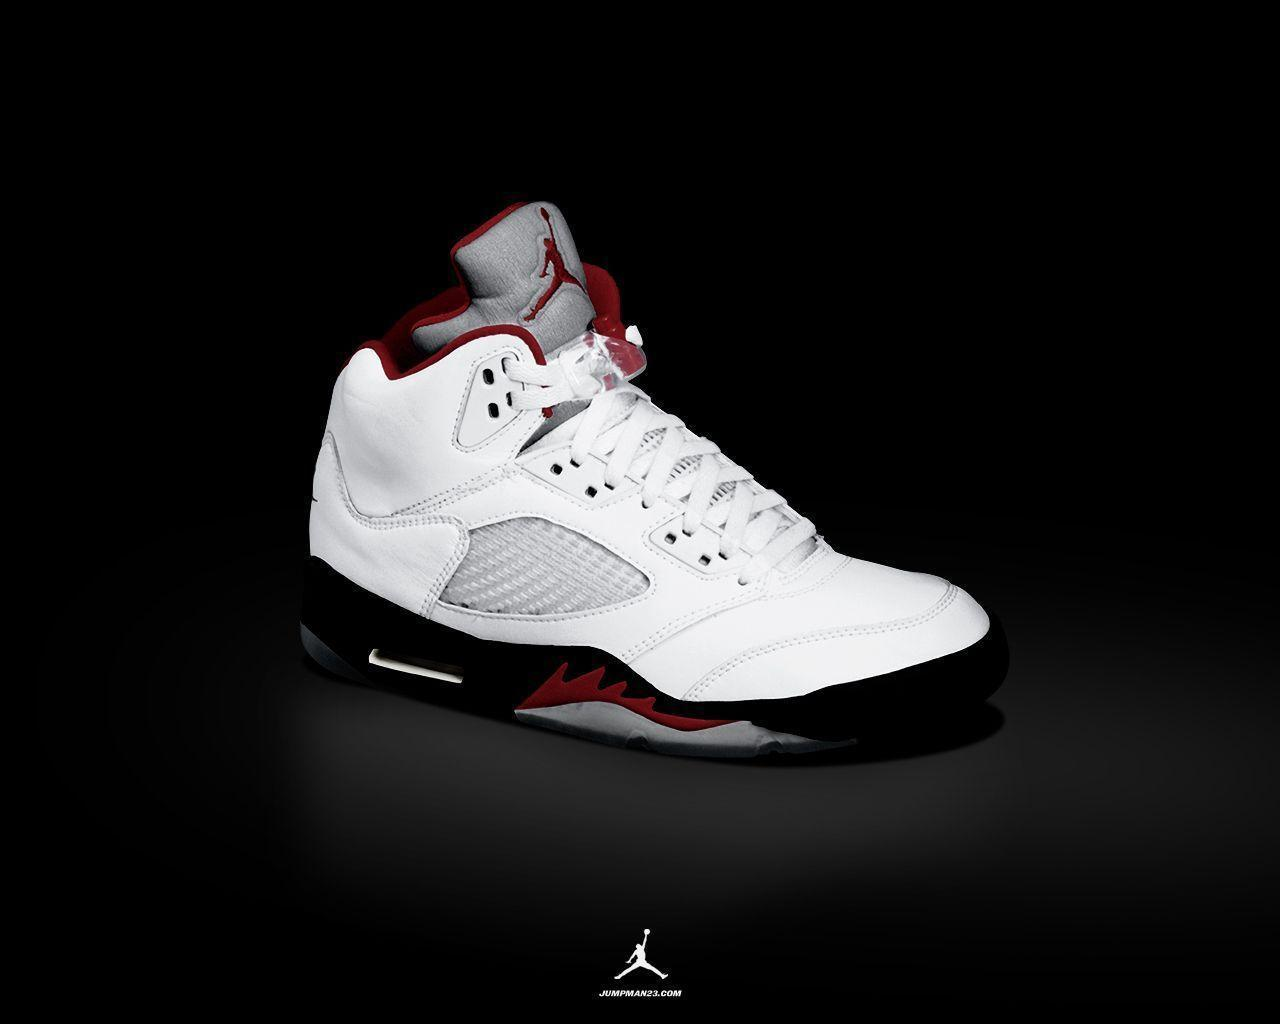 jordan shoes wallpaper - www.wallpaper-free-download.com